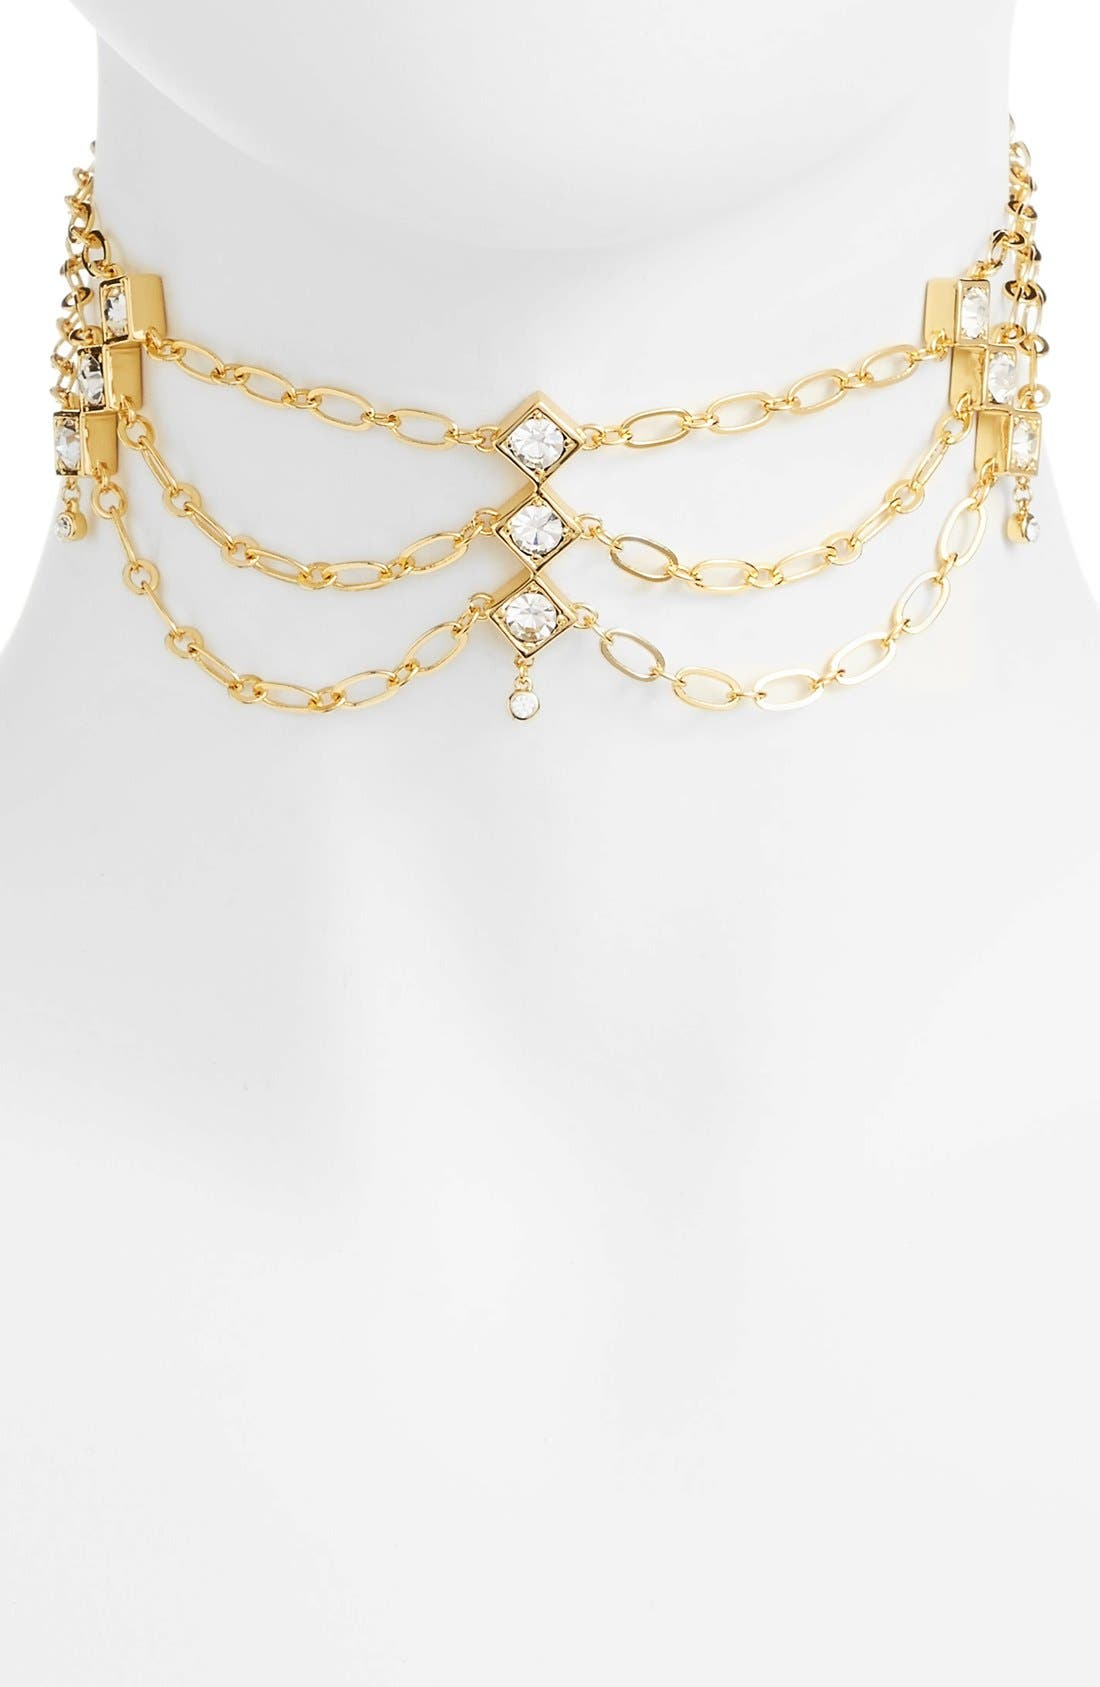 Alternate Image 1 Selected - Jules Smith Tulum Layered Choker